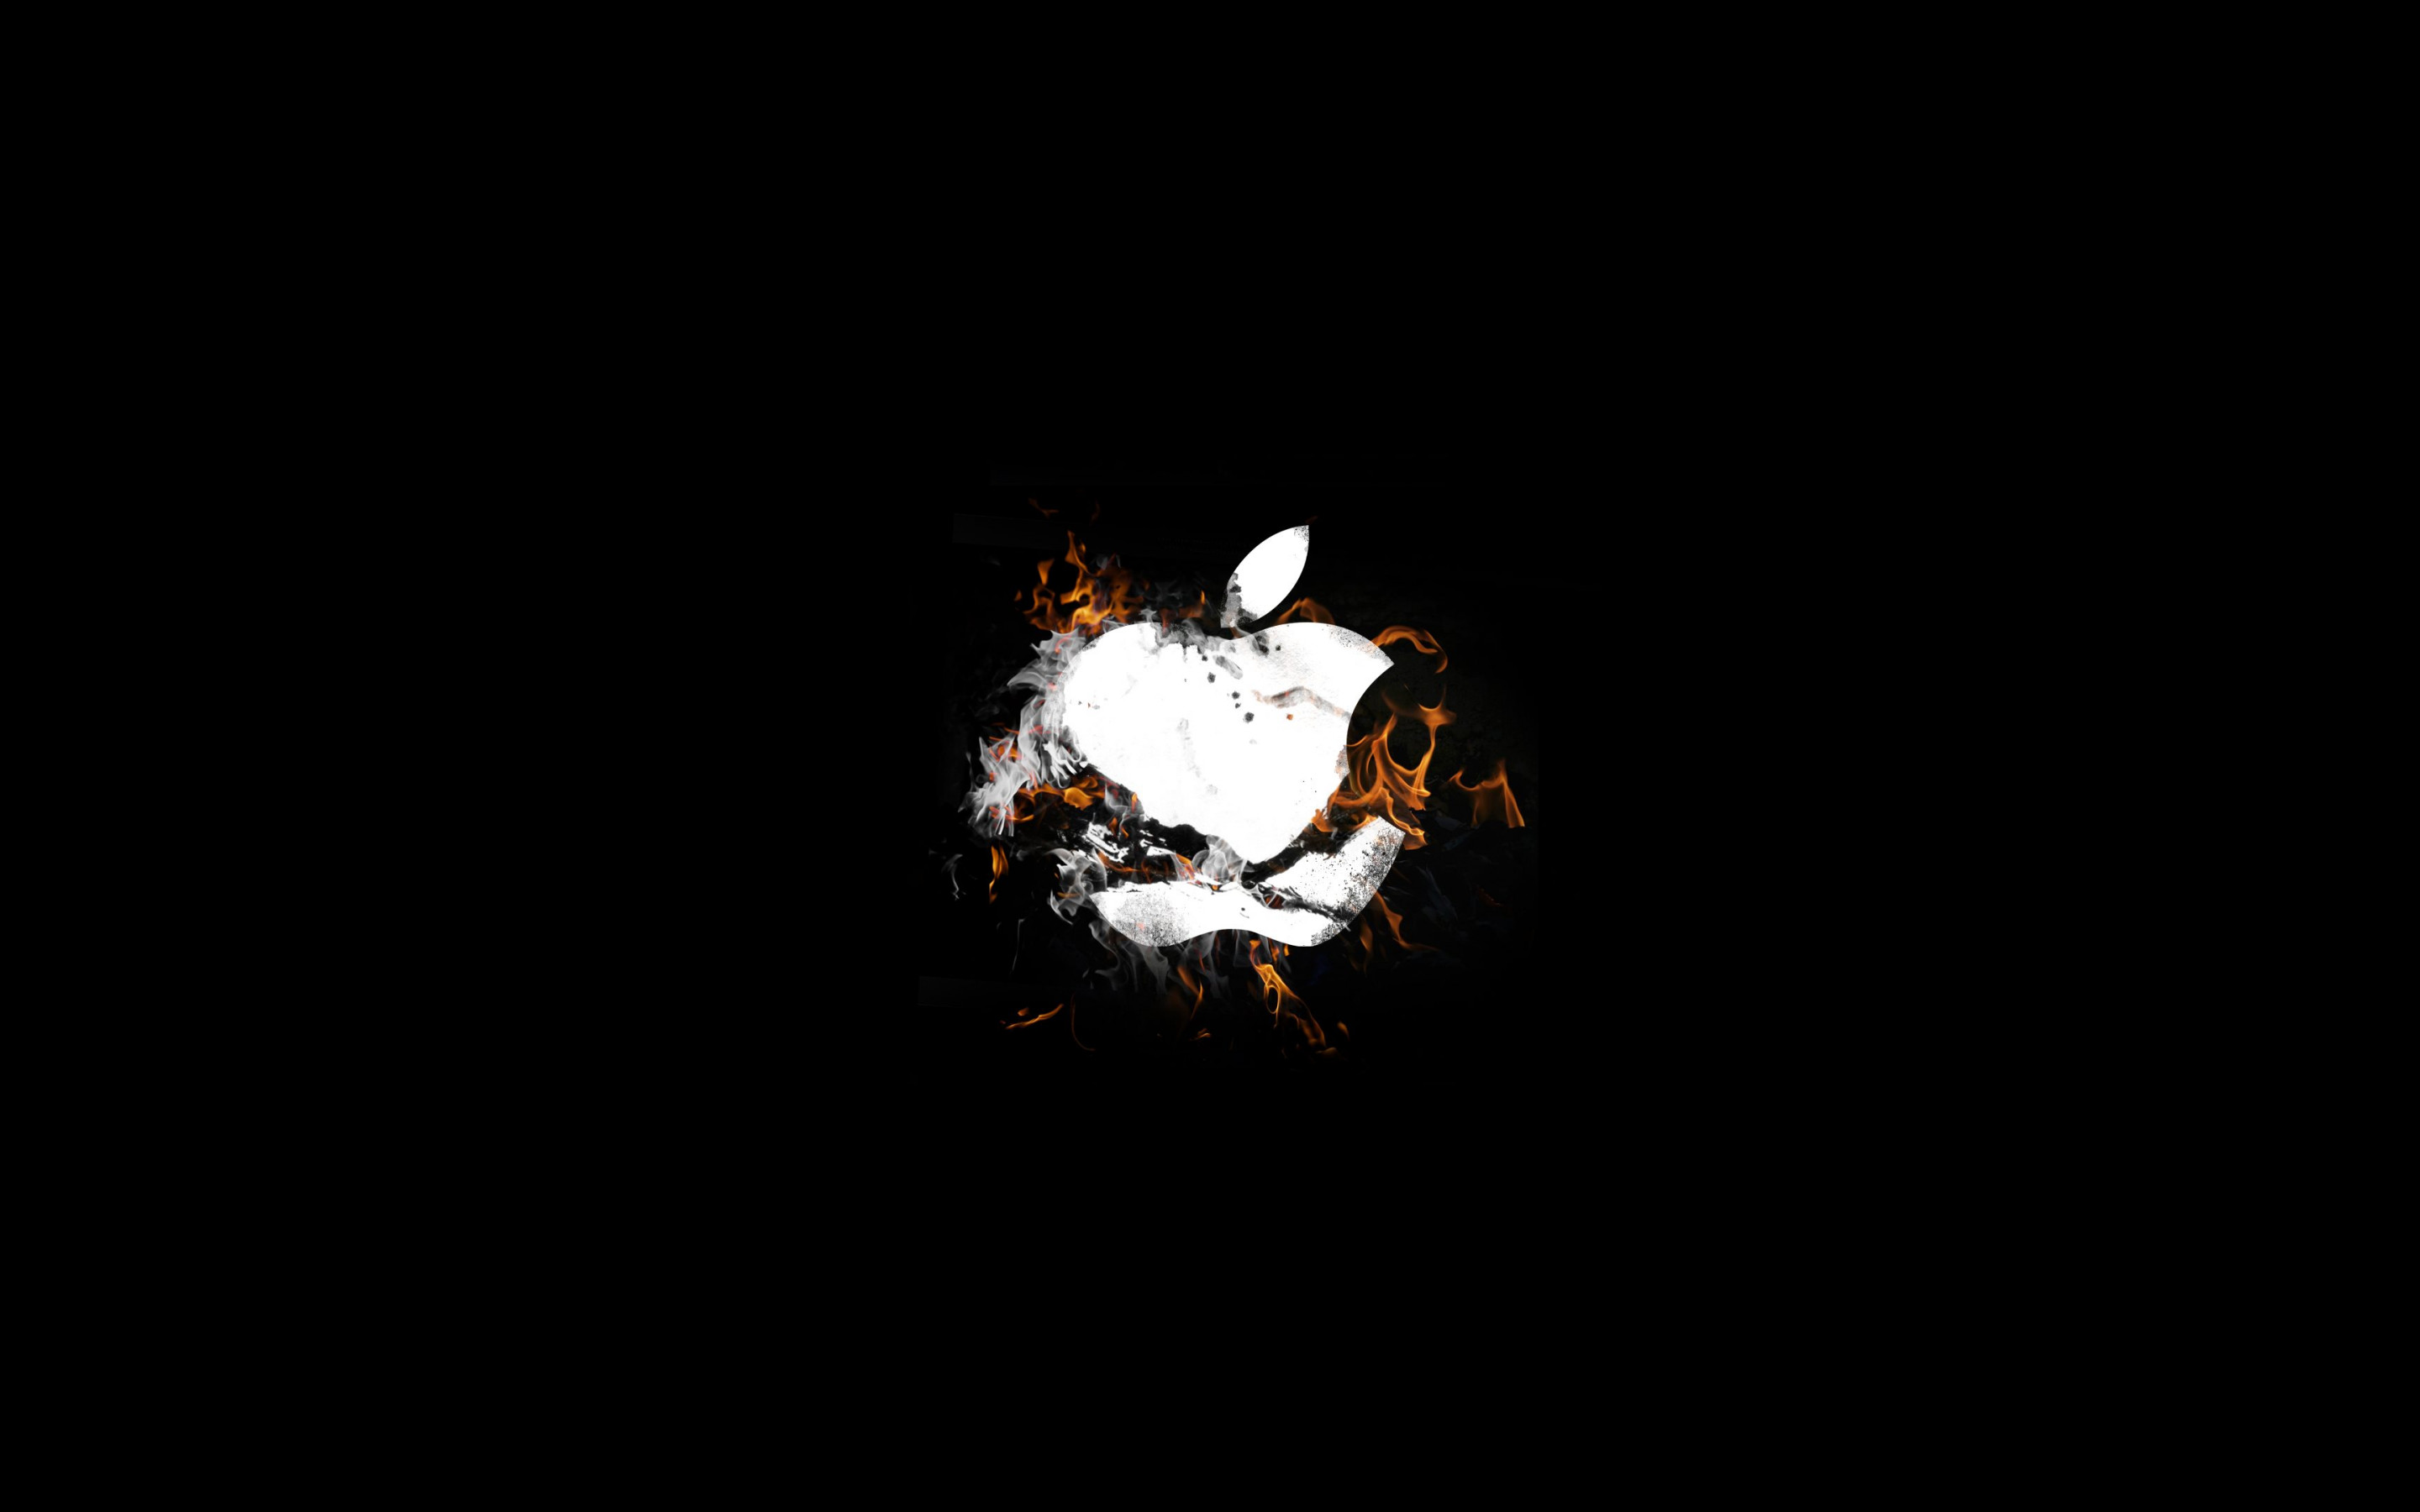 The Apple is on fire | 2880x1800 wallpaper